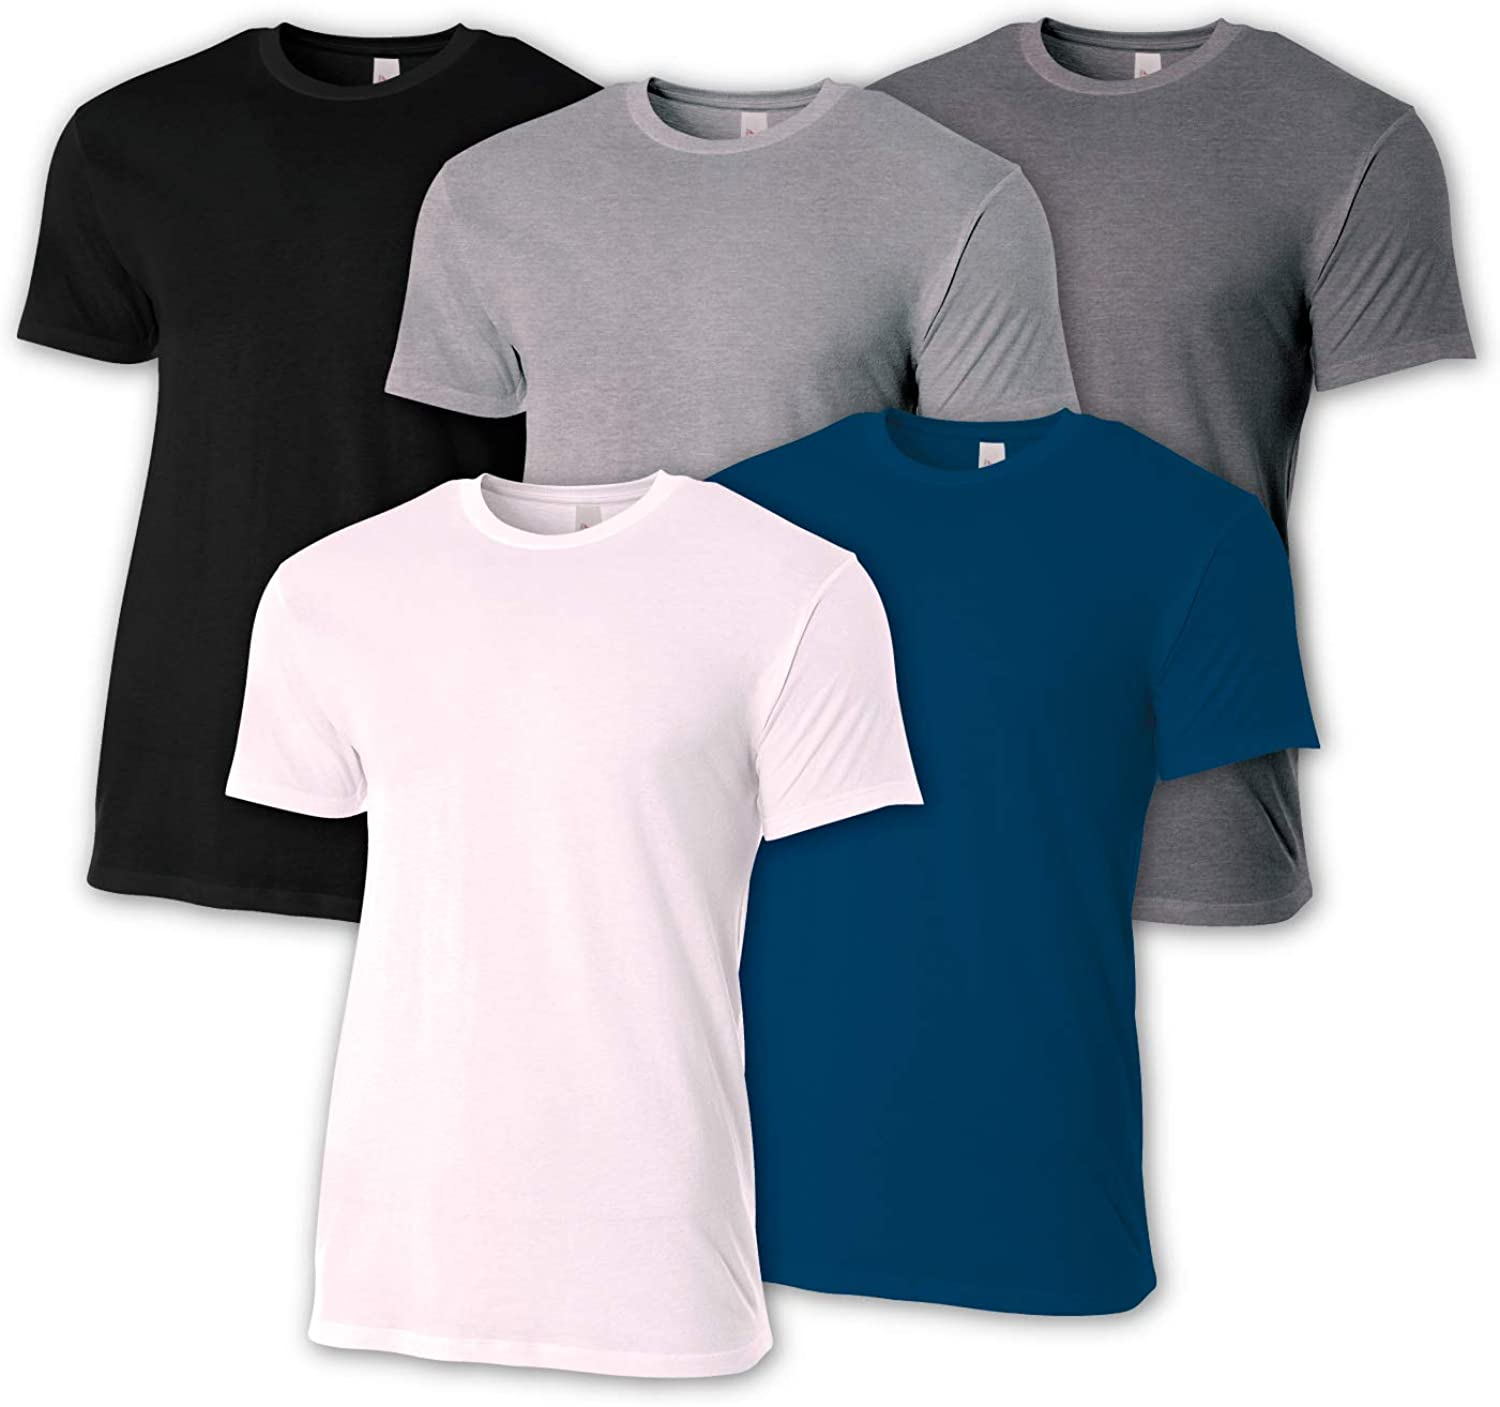 A4 Men's 5 Pack Combed Ring Spun Fitted Cotton Tee